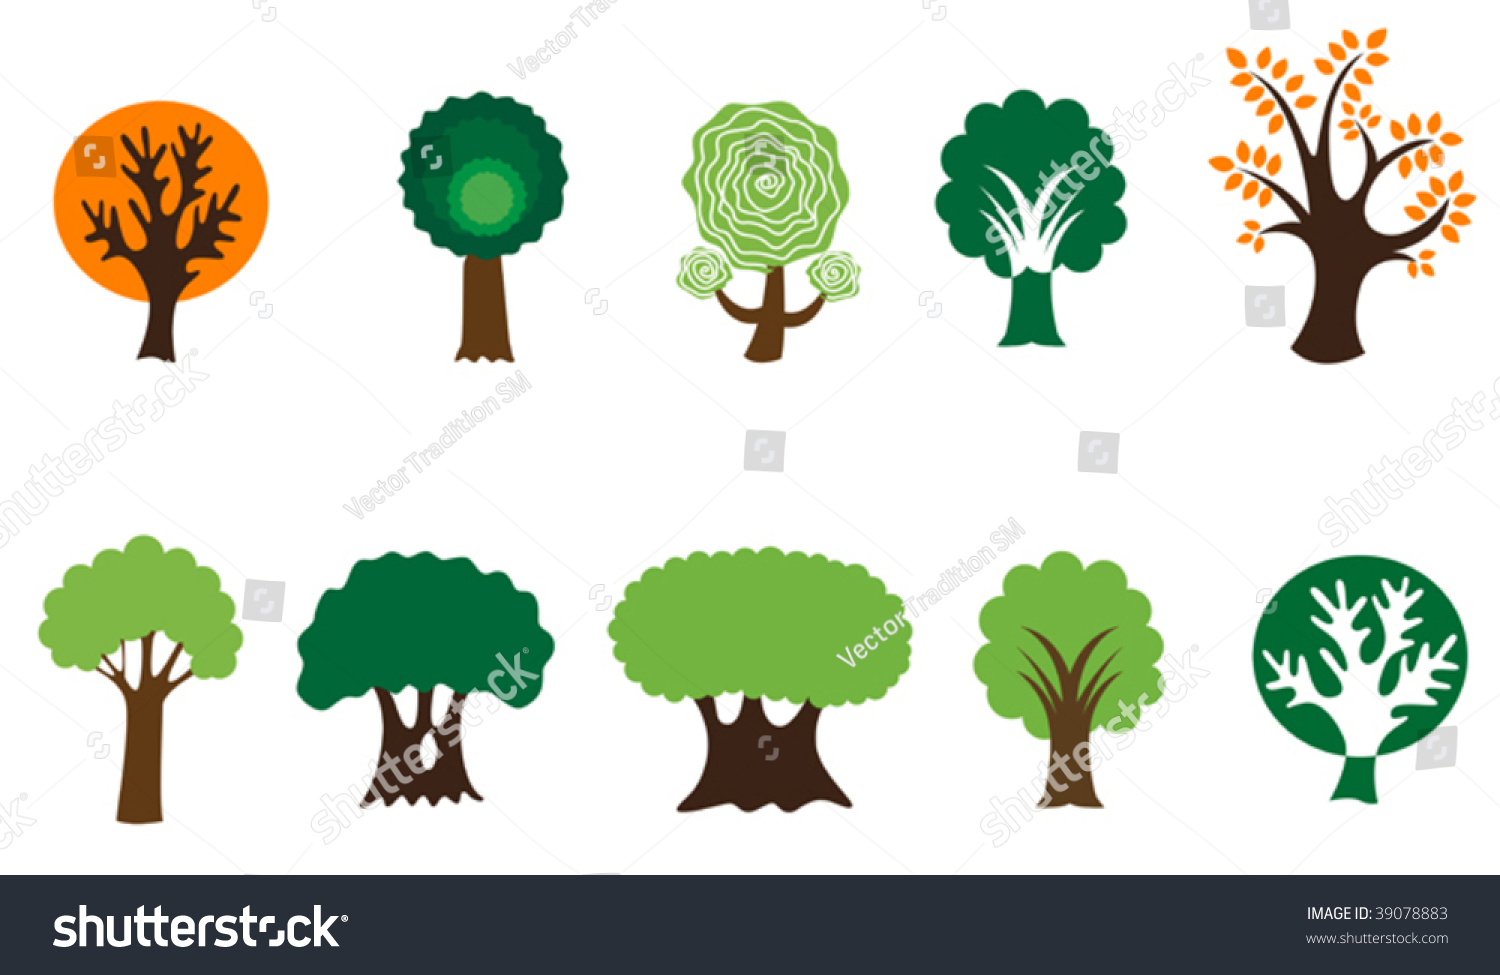 Tree Symbols For Emblems Jpeg Version Also Available In